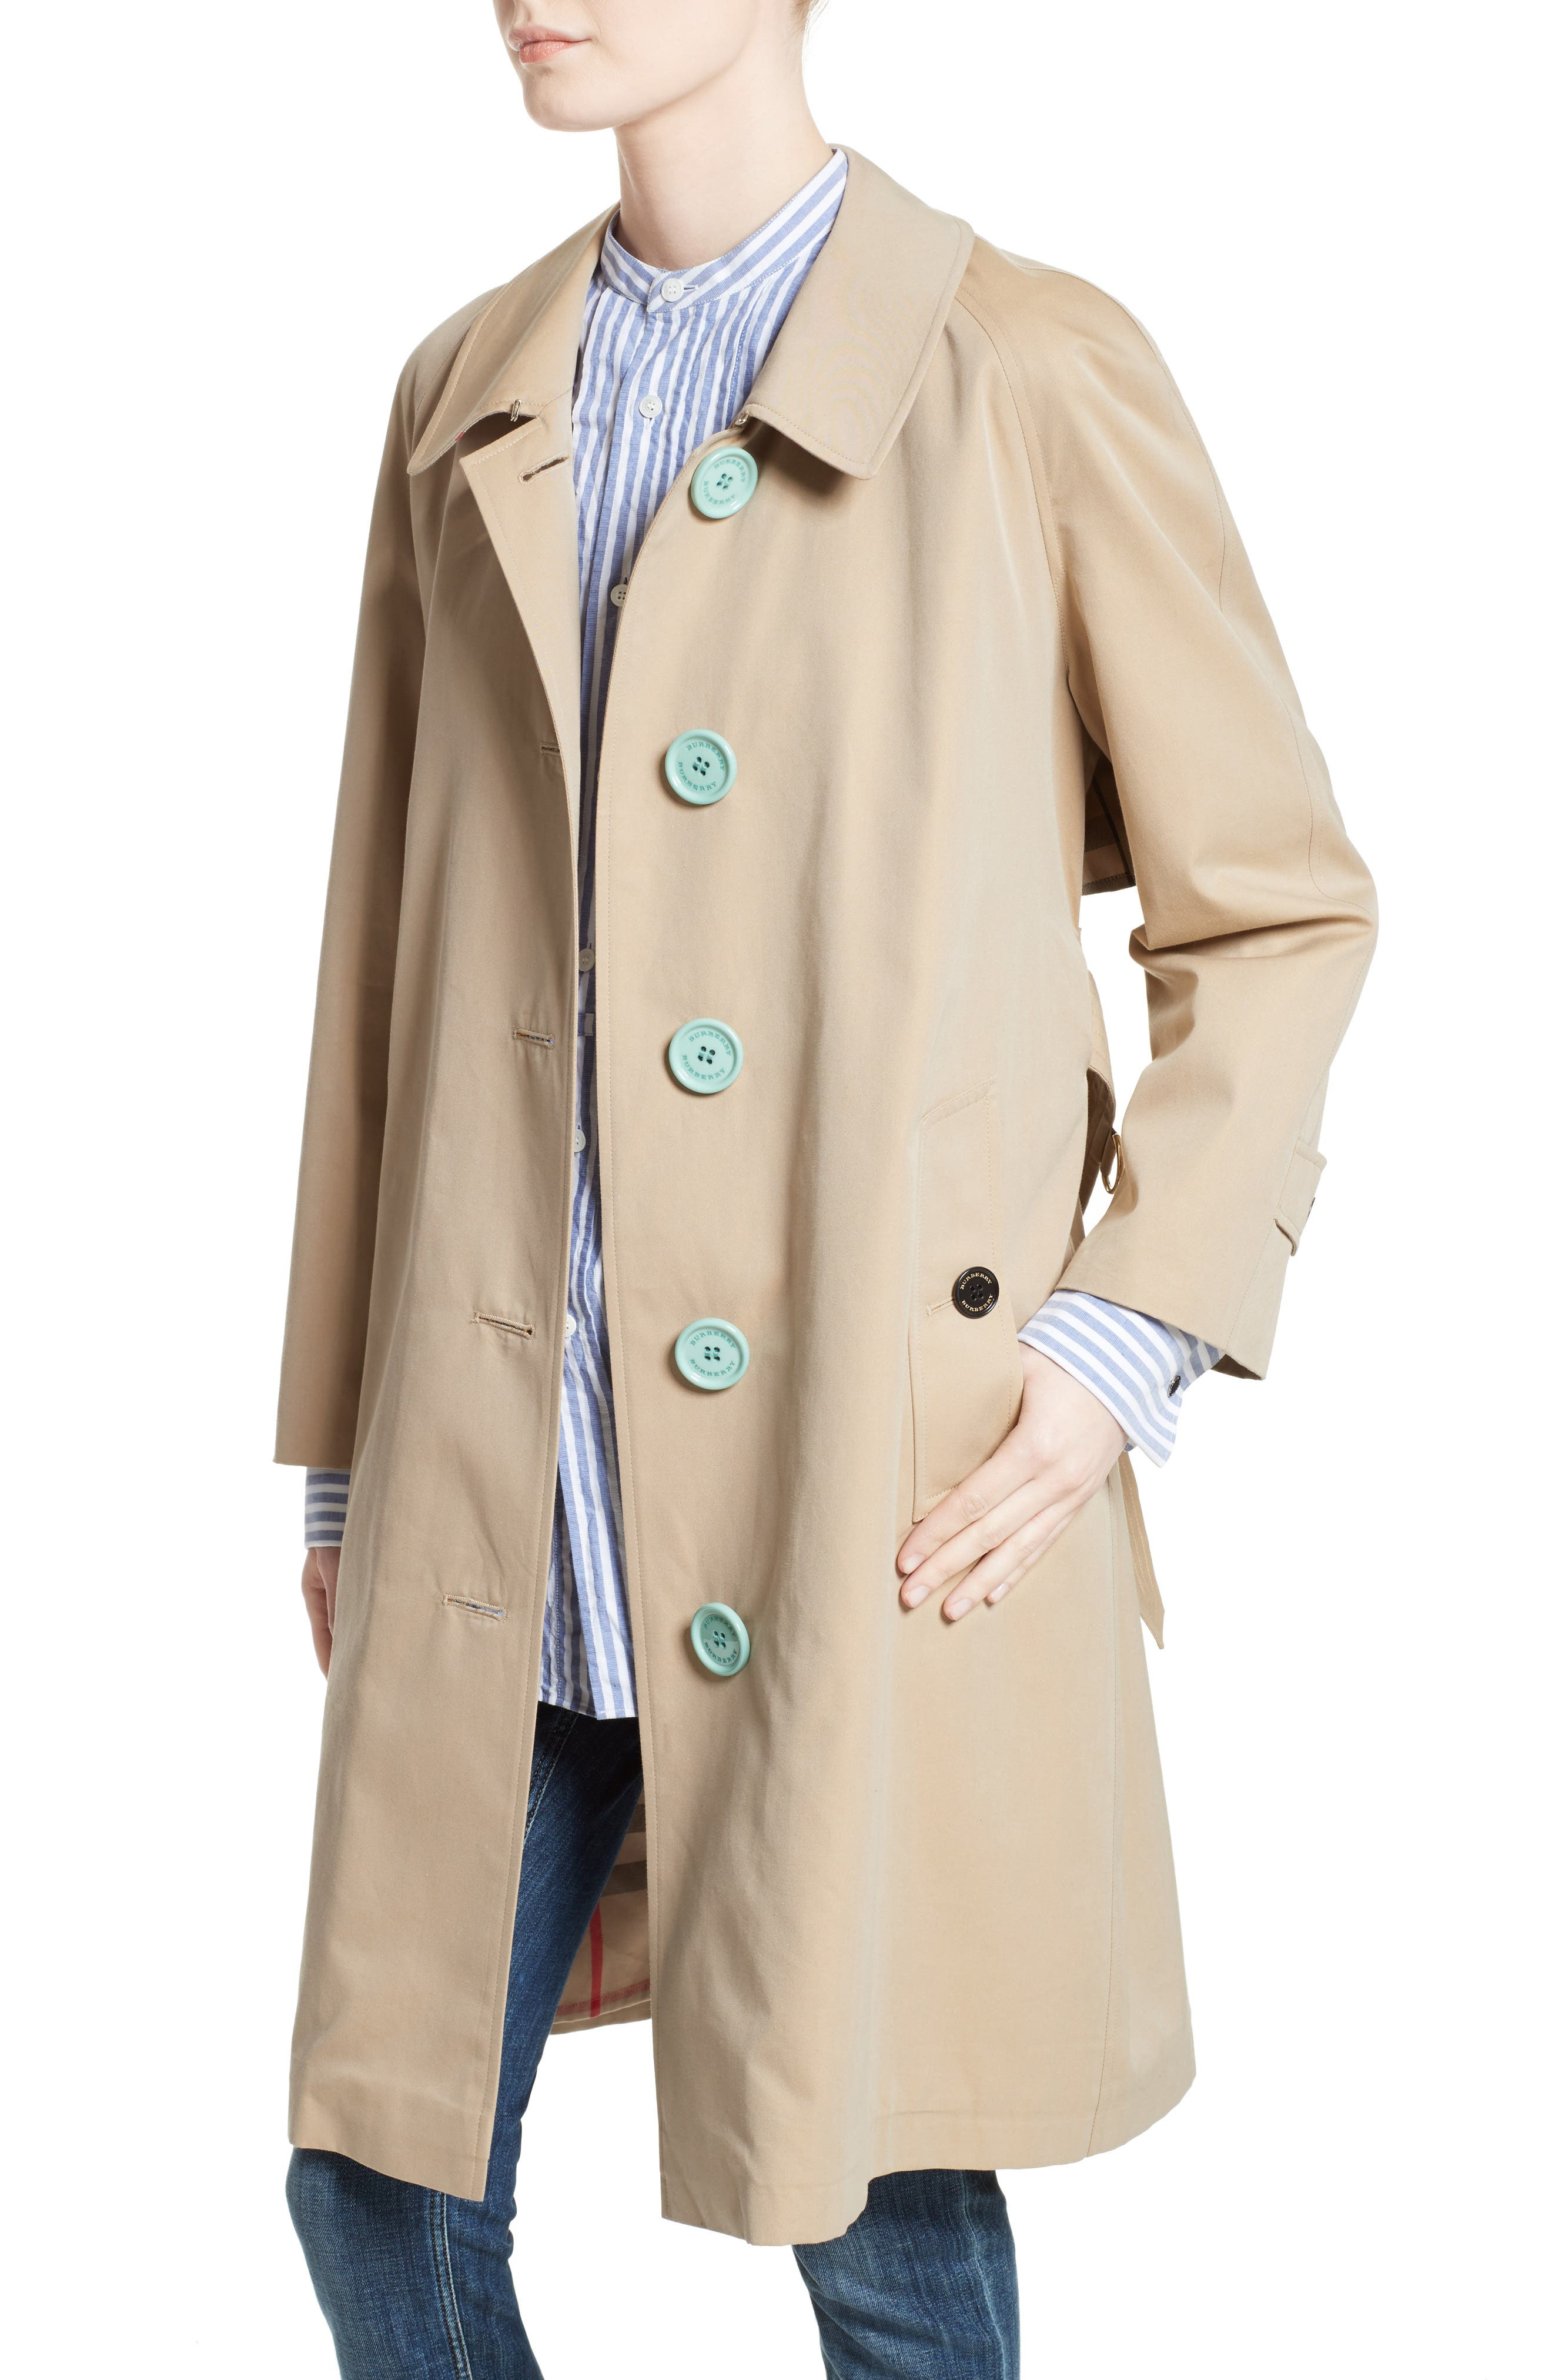 Brinkhill Trench Coat,                             Alternate thumbnail 7, color,                             Honey